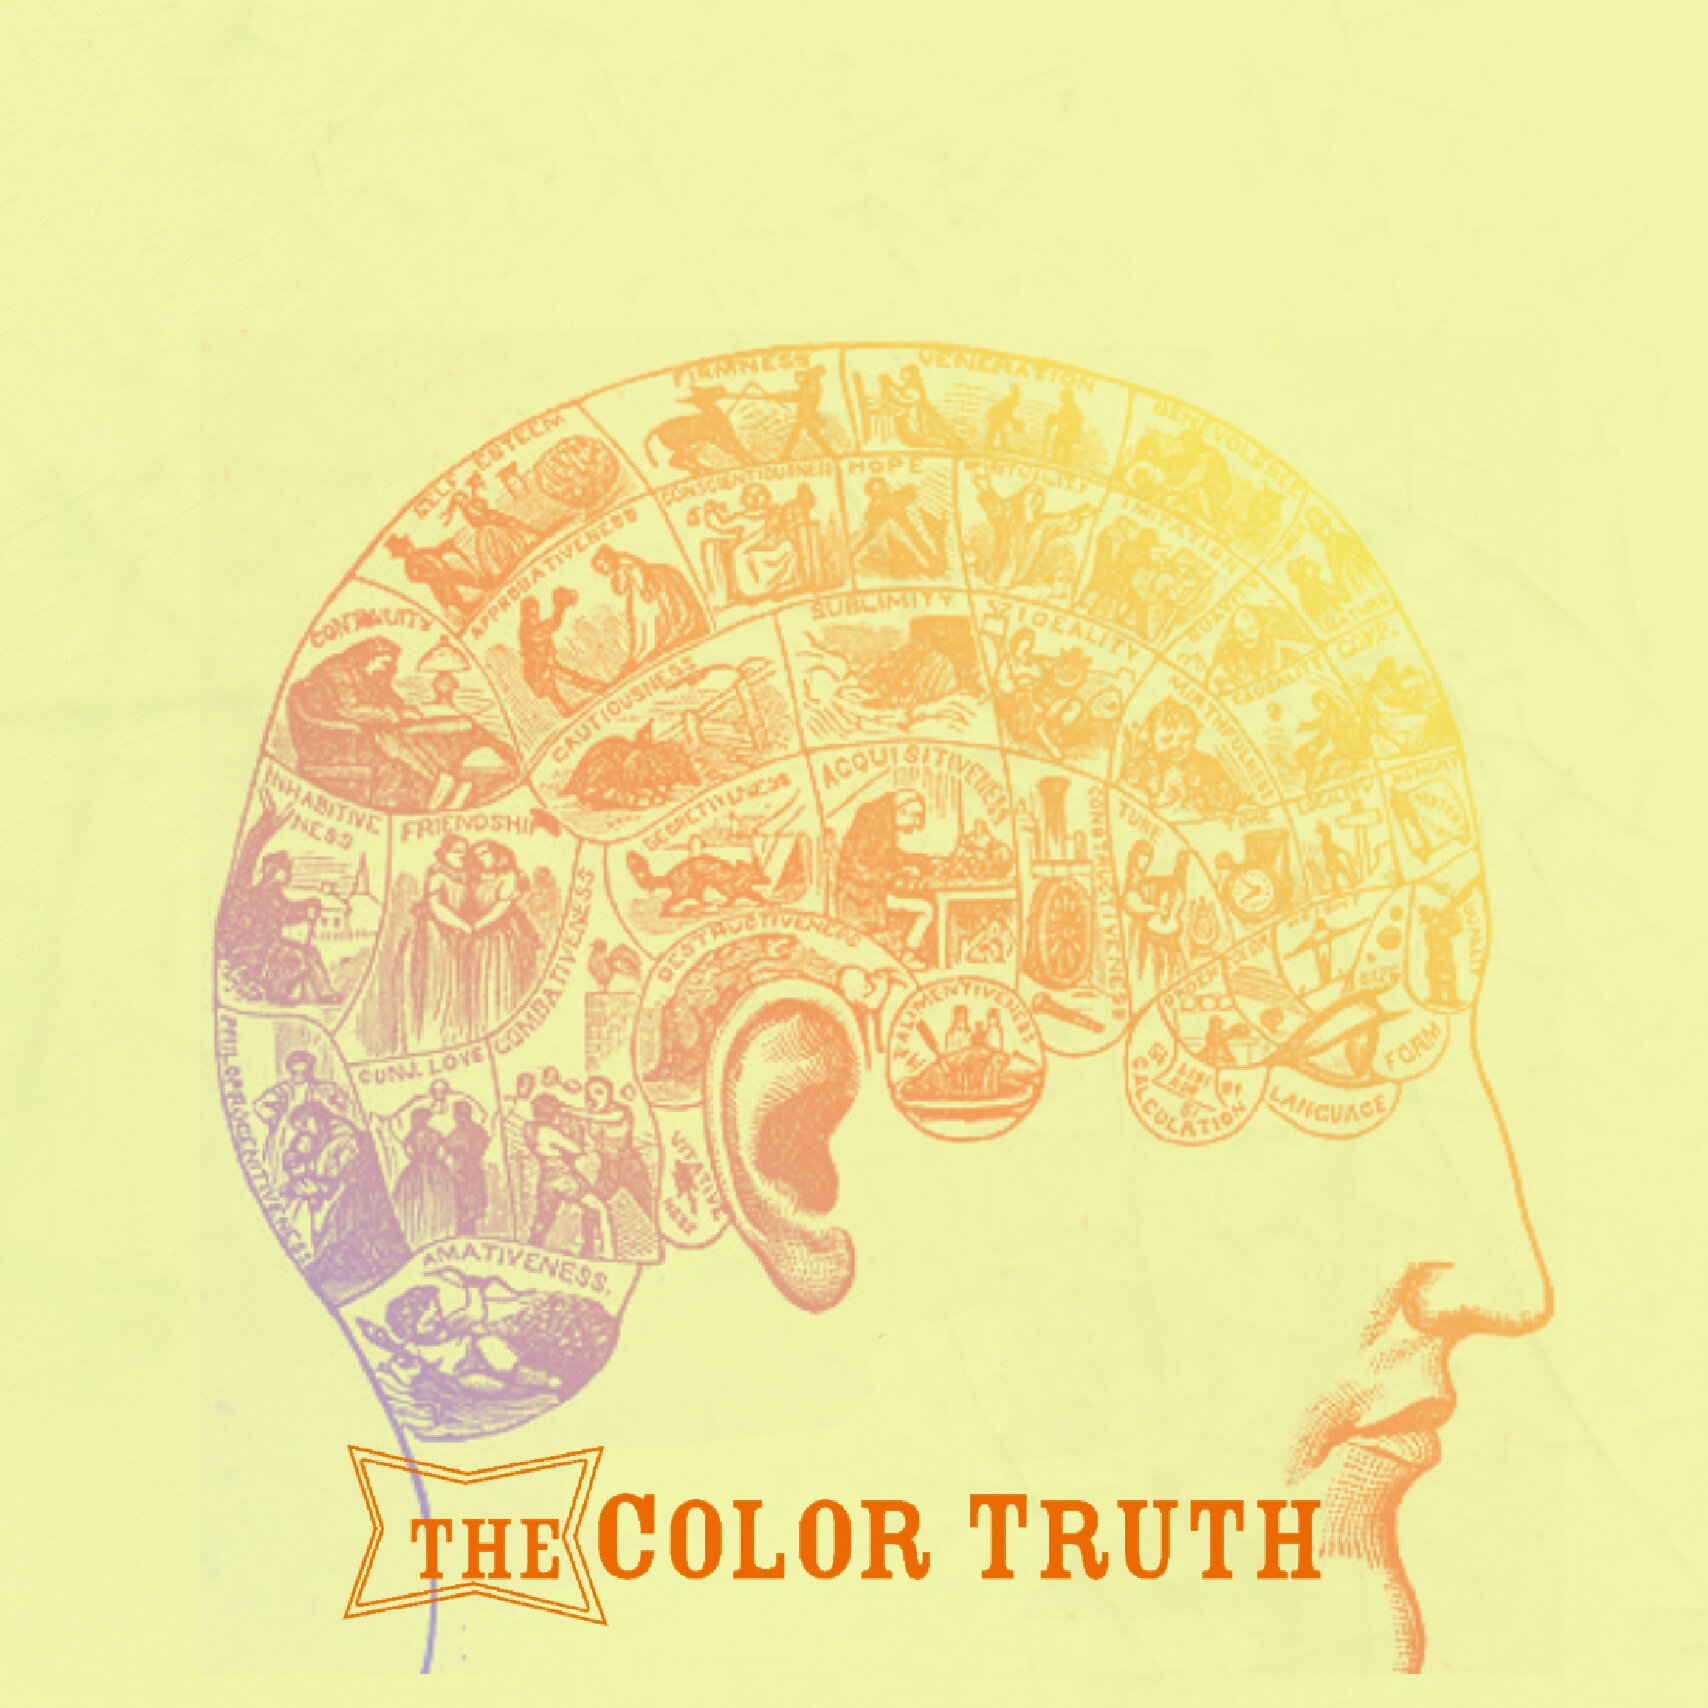 The Color Truth (The Color Truth, 2010)